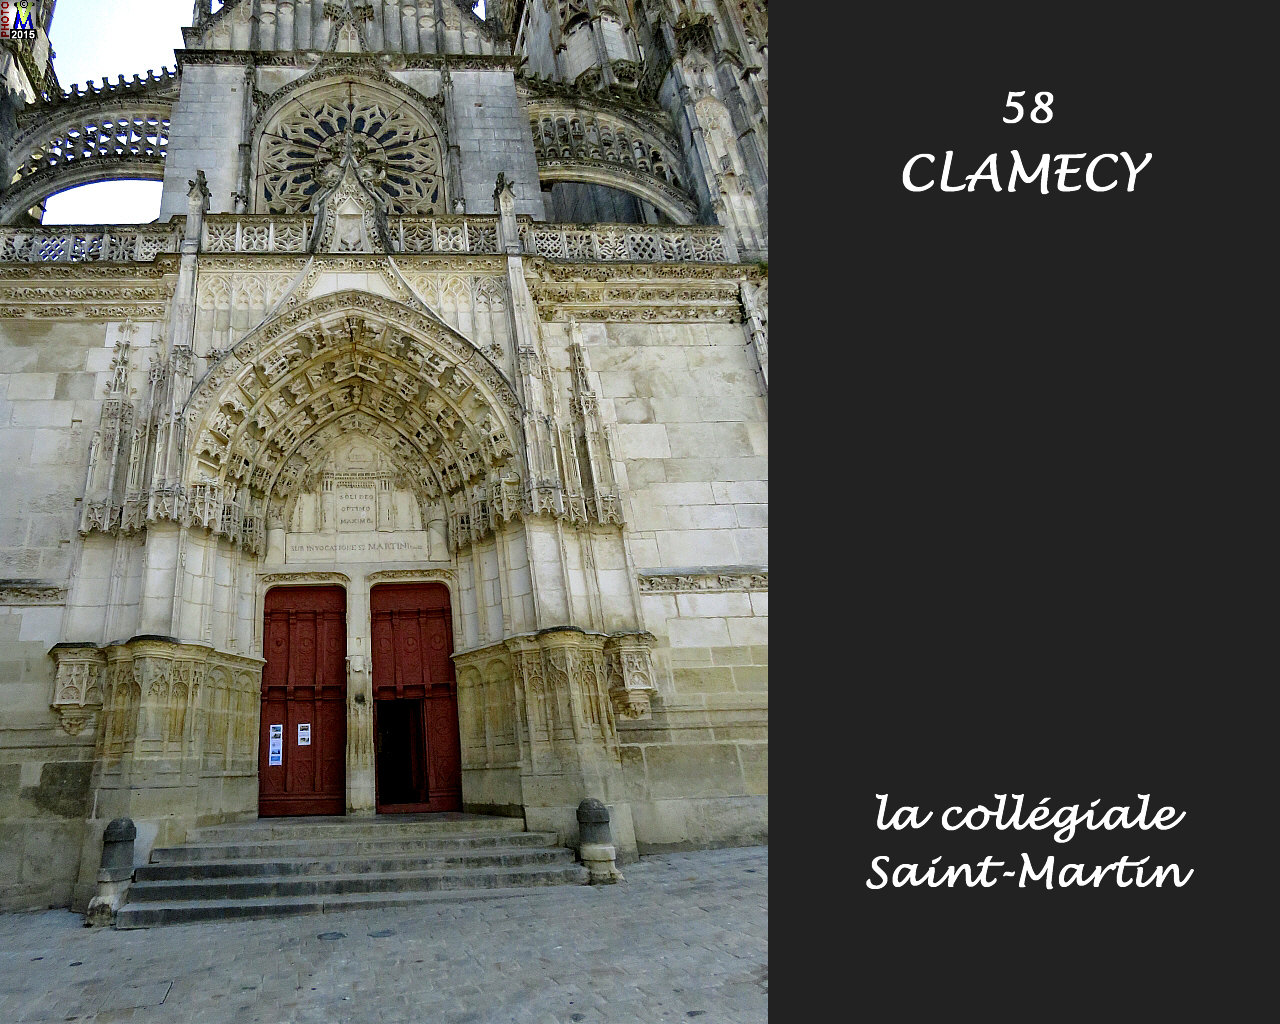 58CLAMECY-collegiale_122.jpg